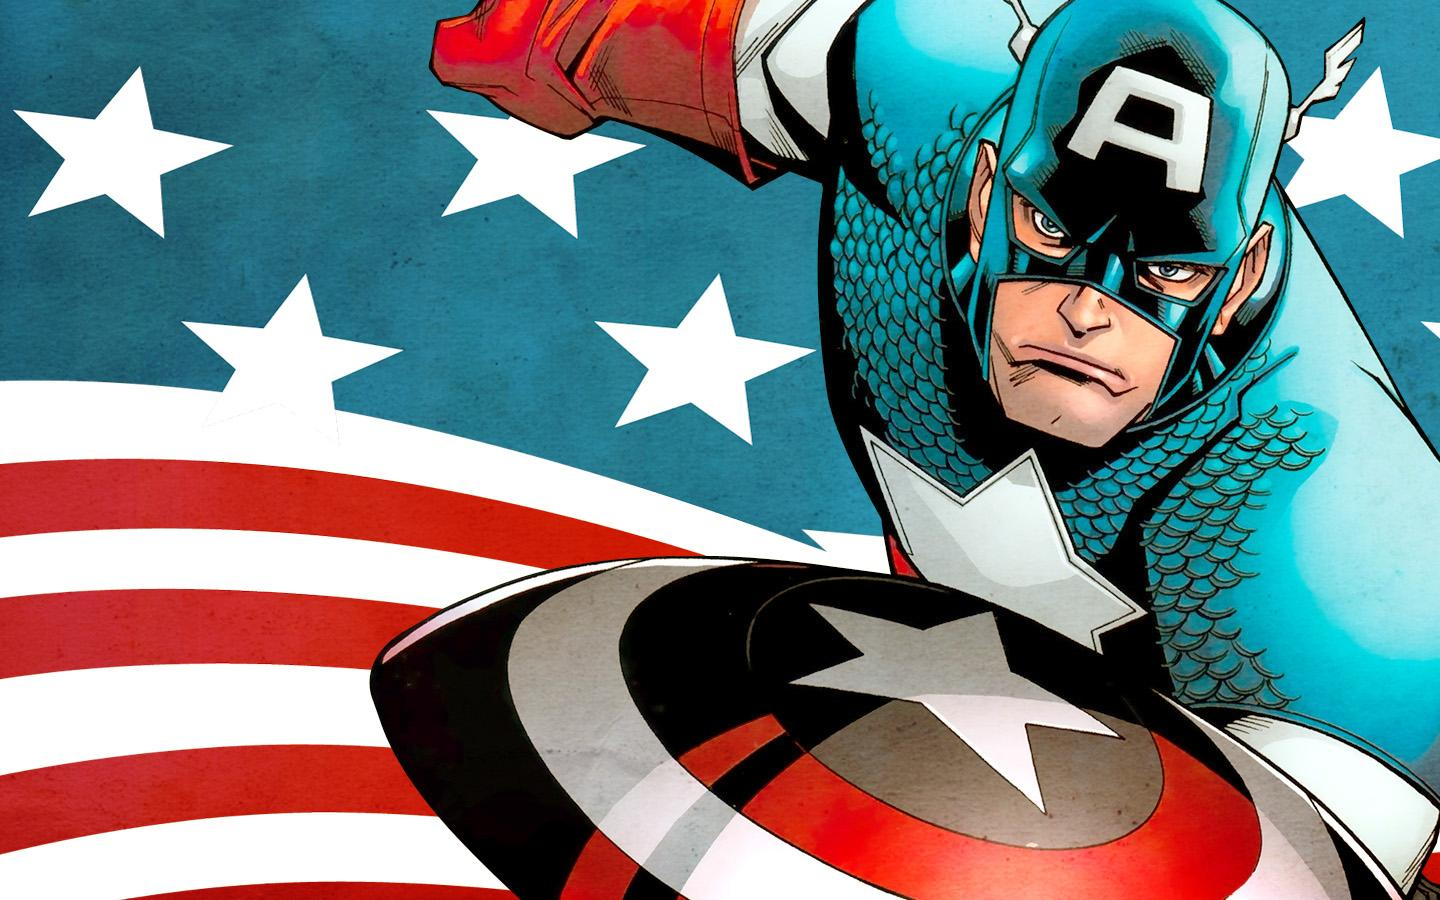 Live Wallpaper Iphone 4s Free Download Captain America Comic Wallpaper Gallery